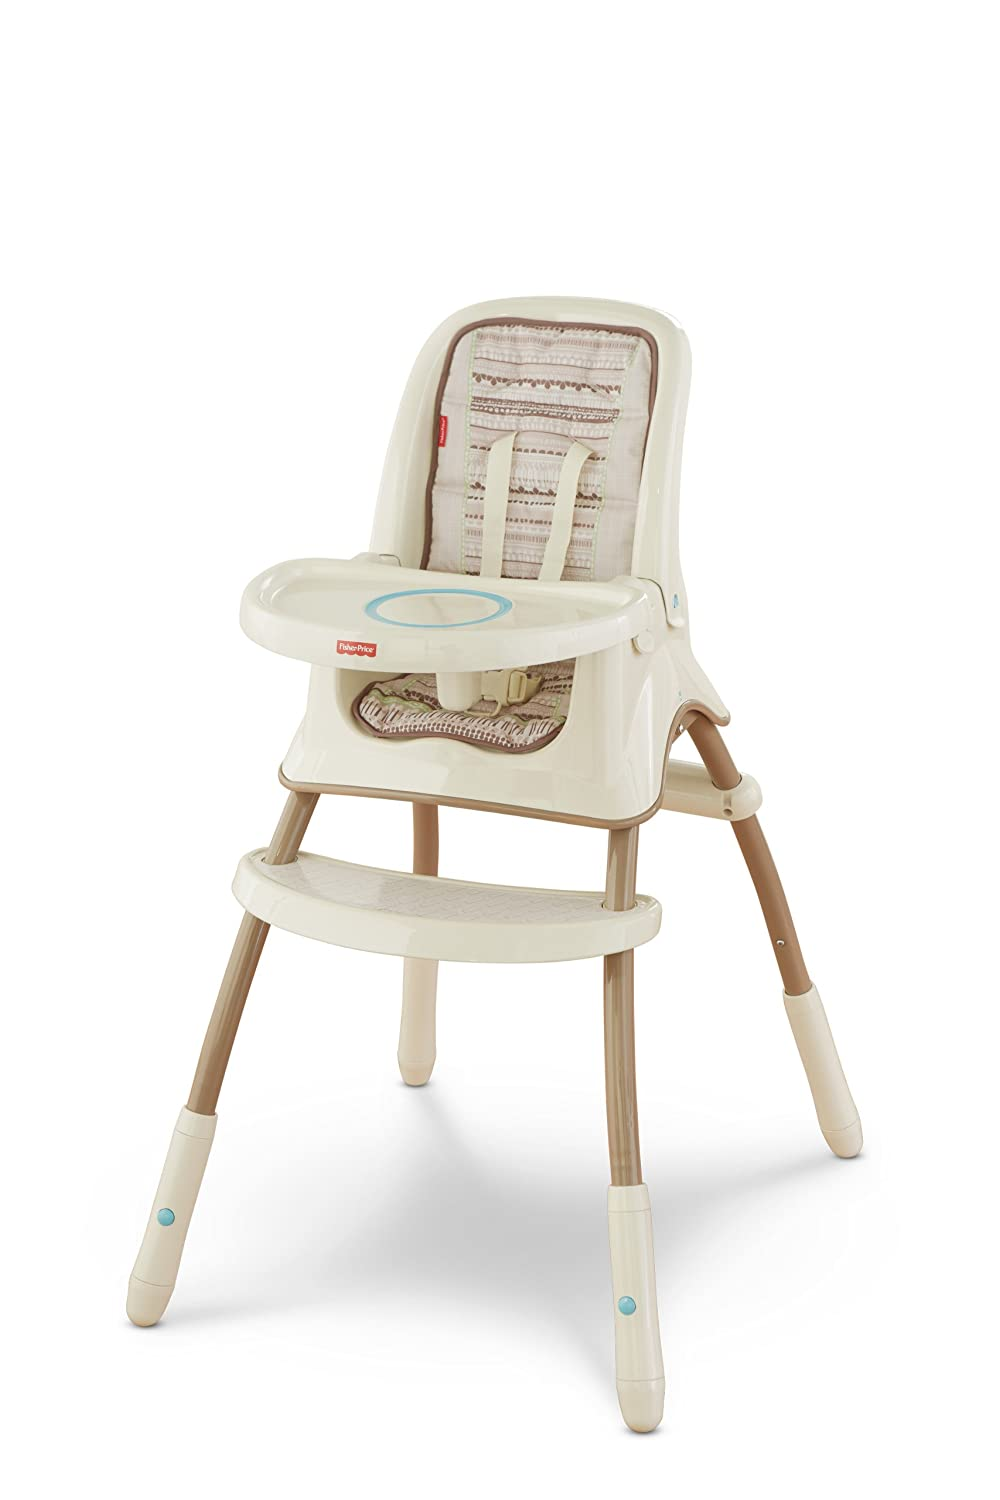 evenflo compact high chair my first anywhere slipcover top rated chairs for babies 2018